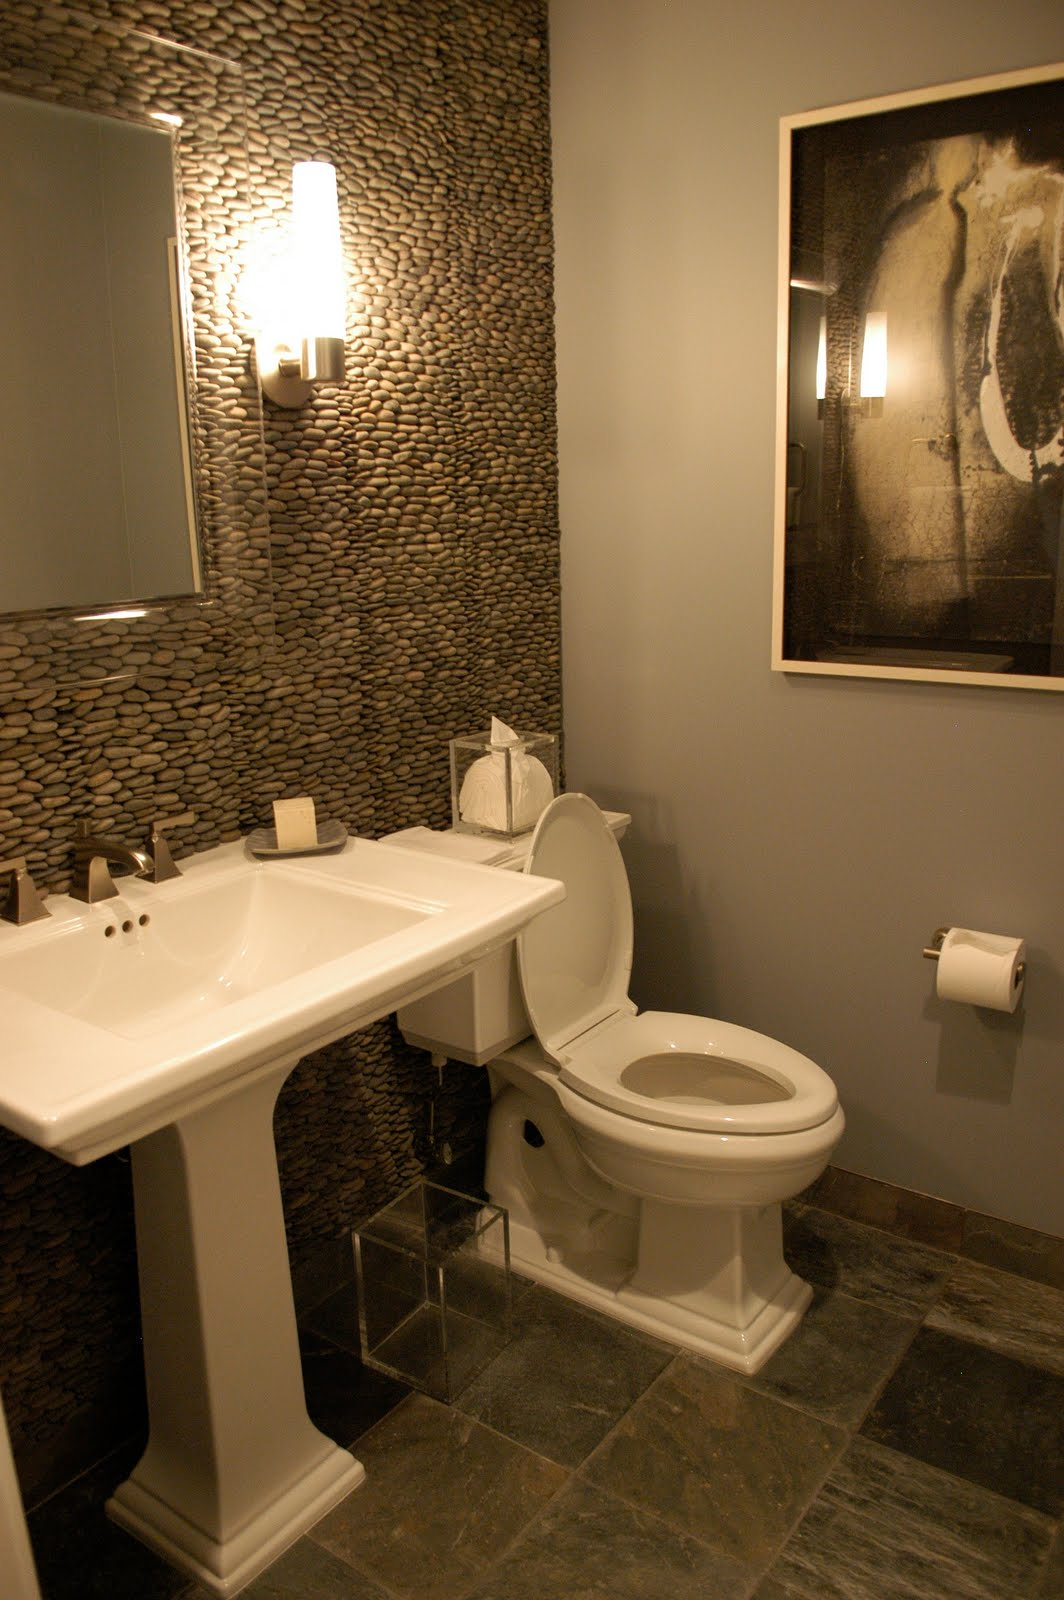 Tiny Powder Room Designs: Joy Studio Design Gallery - Best Design